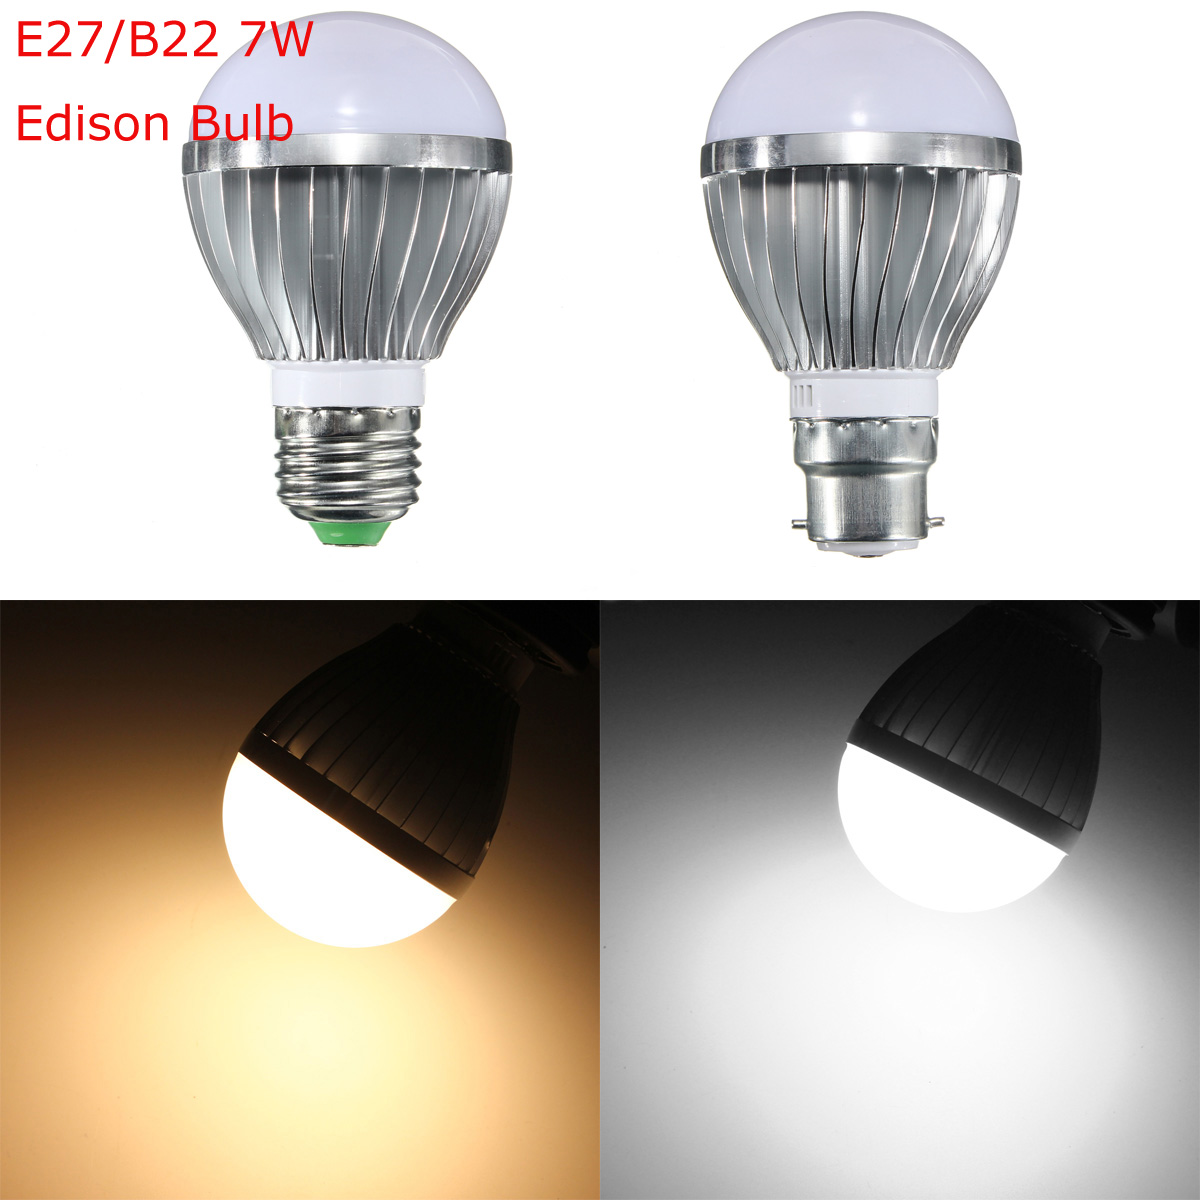 e27 b22 7w dimmable 10 smd5730 led bayonet edison bulb. Black Bedroom Furniture Sets. Home Design Ideas